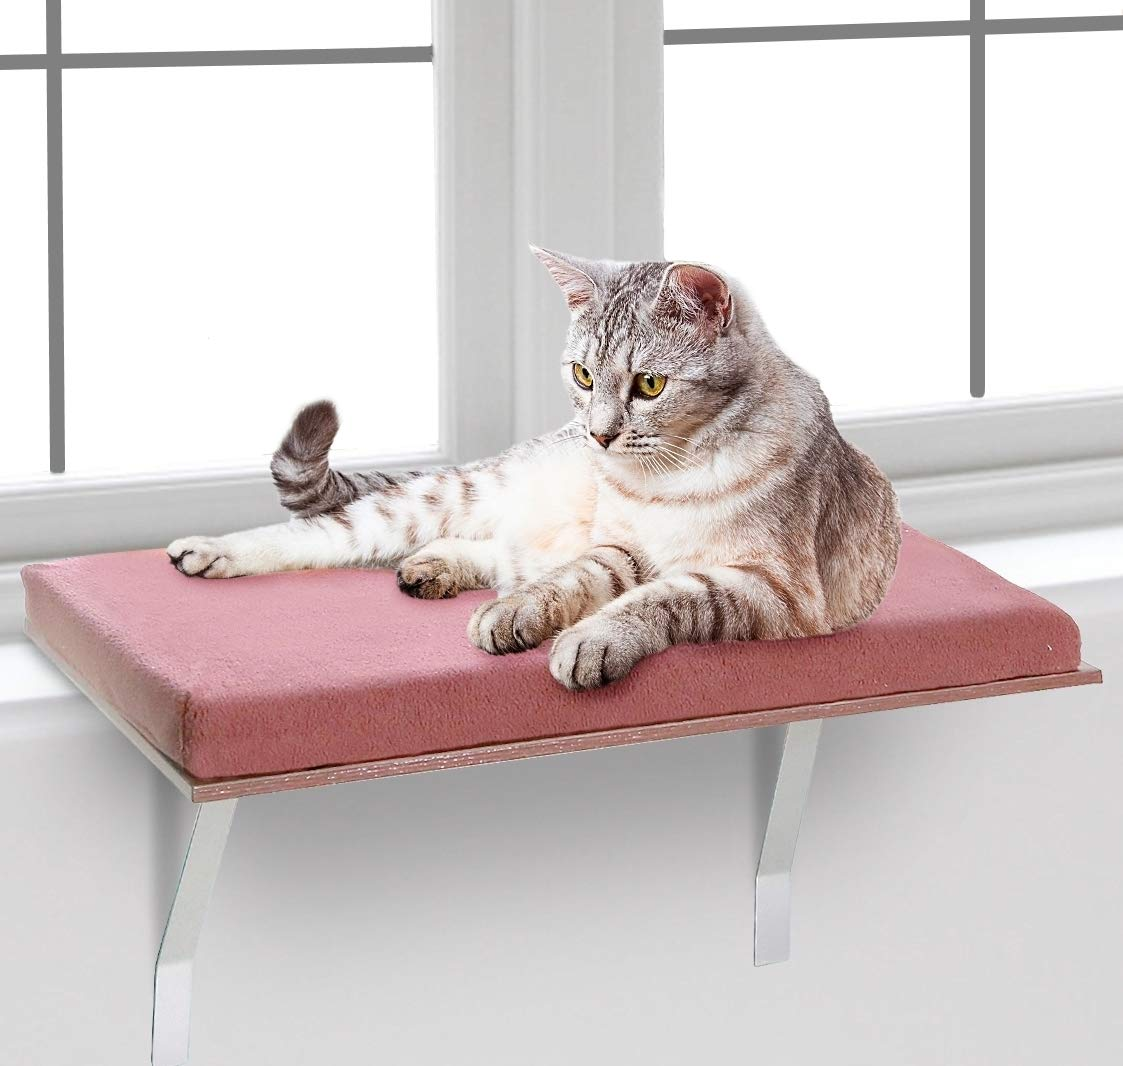 Bundaloo Cat Window Perch | Easy Set-up DIY Kitty Sill | Mounted Shelf Bed for Pets | House Pets Furniture | Sturdy Couch for All Kitten Sizes | Washable Foam Seat (Modern Brown, Medium 23-3/4 x 12'') by Bundaloo